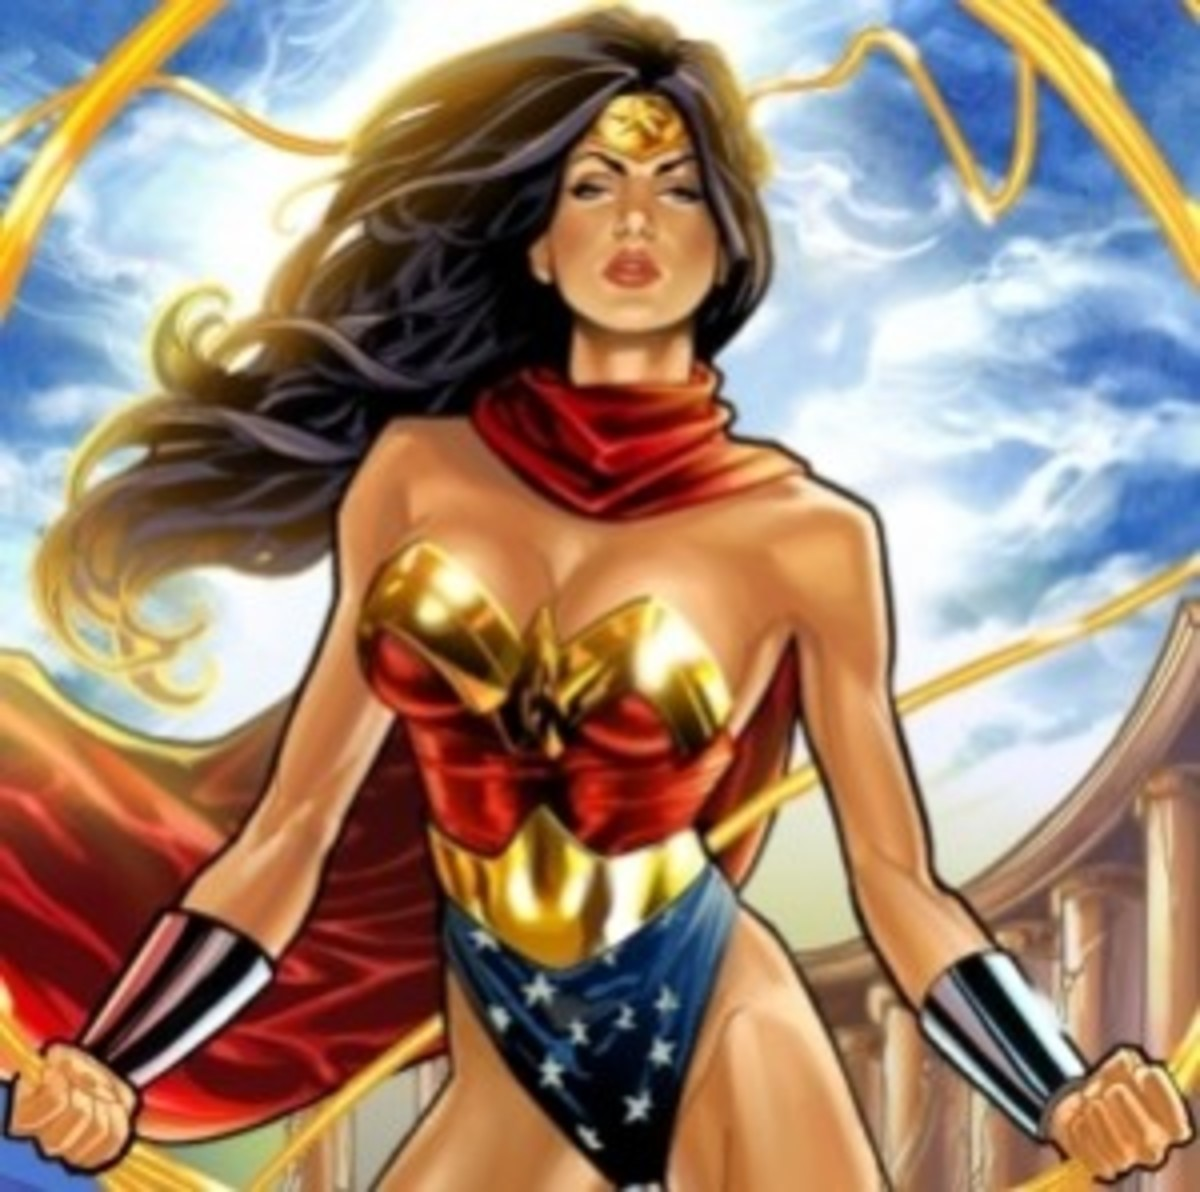 Who Should Be Wonder Woman In Wonder Woman The Movie?